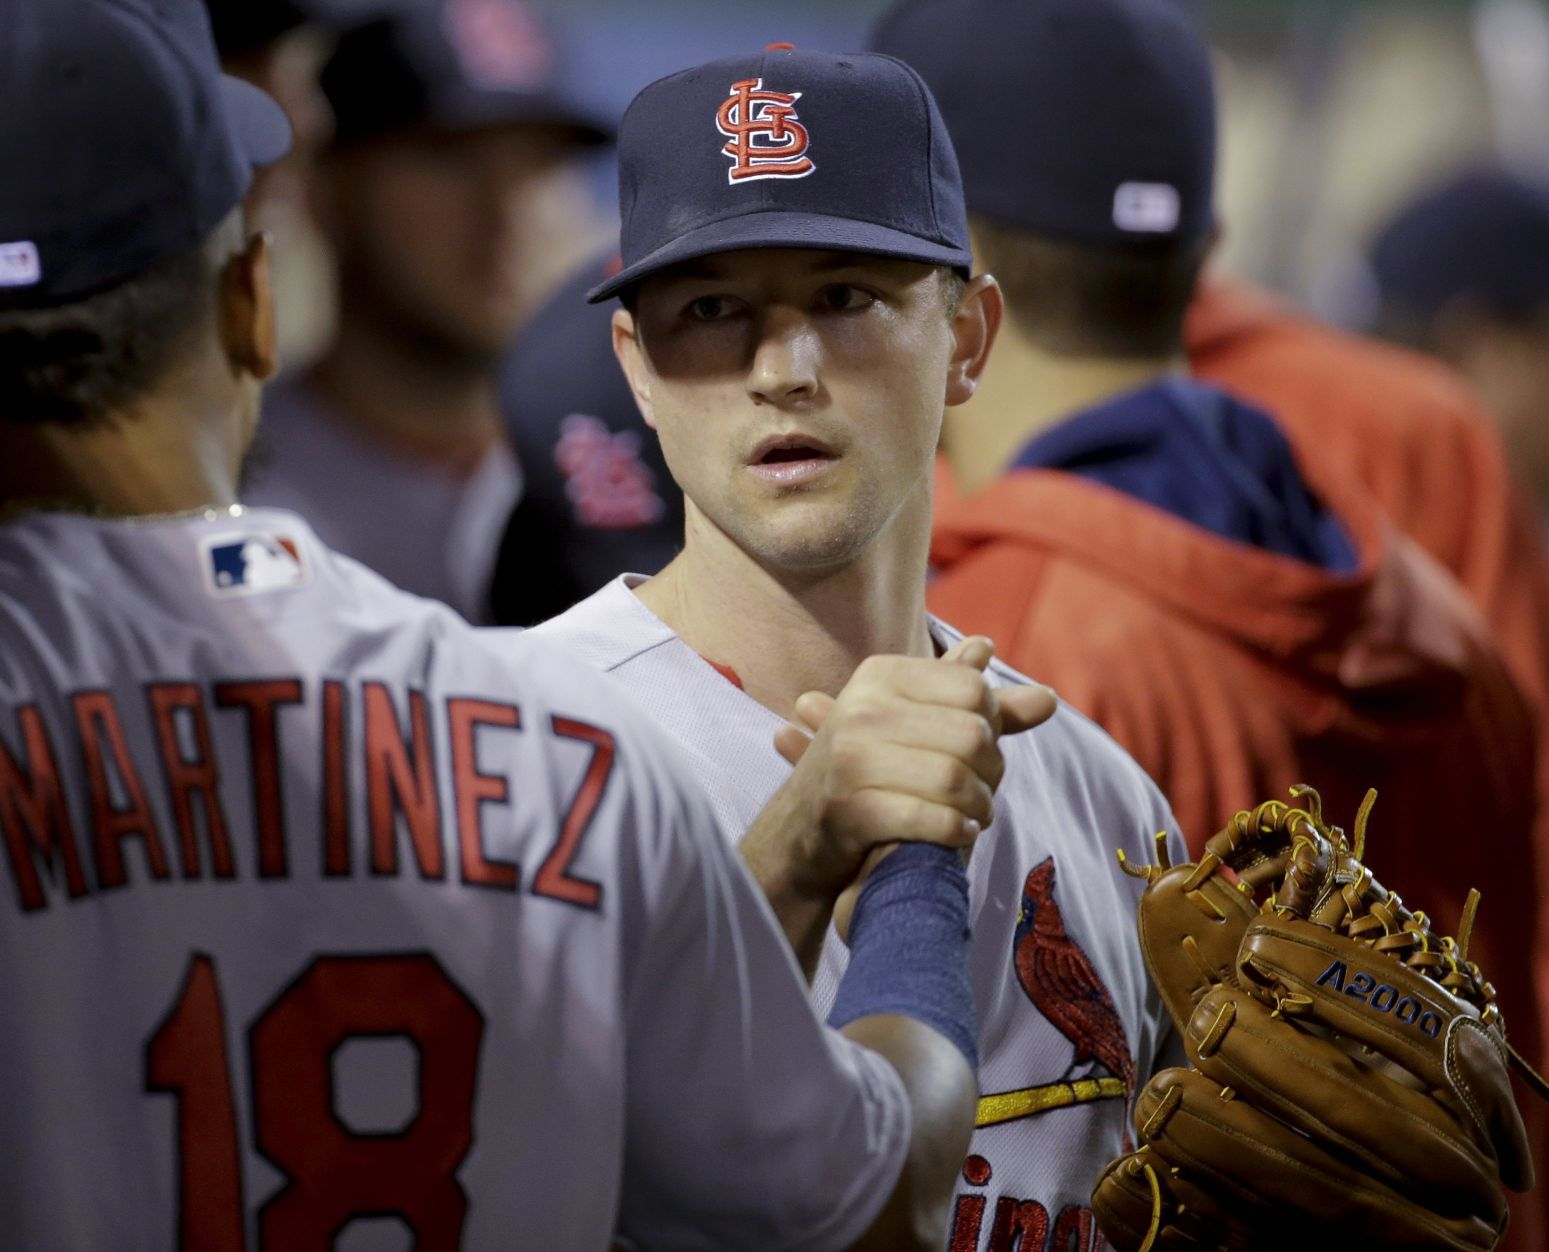 Leake earns first win with Cardinals